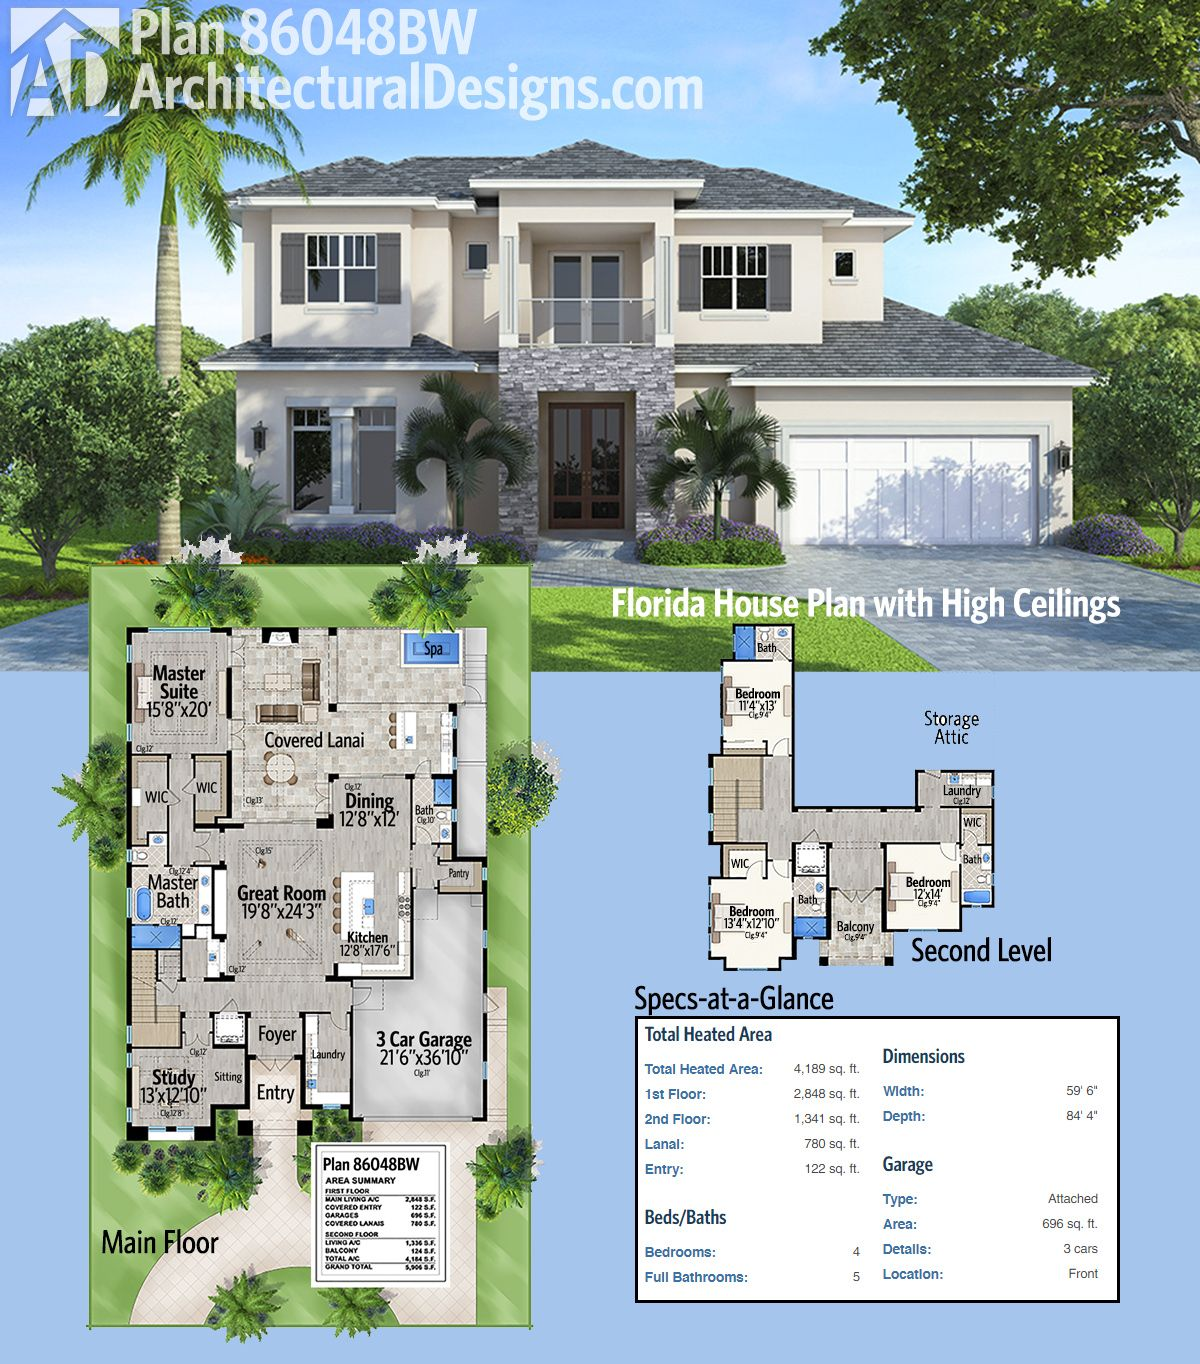 Plan 86048bw Florida House Plan With High Ceilings Florida House Plans House Plans Architectural Design House Plans